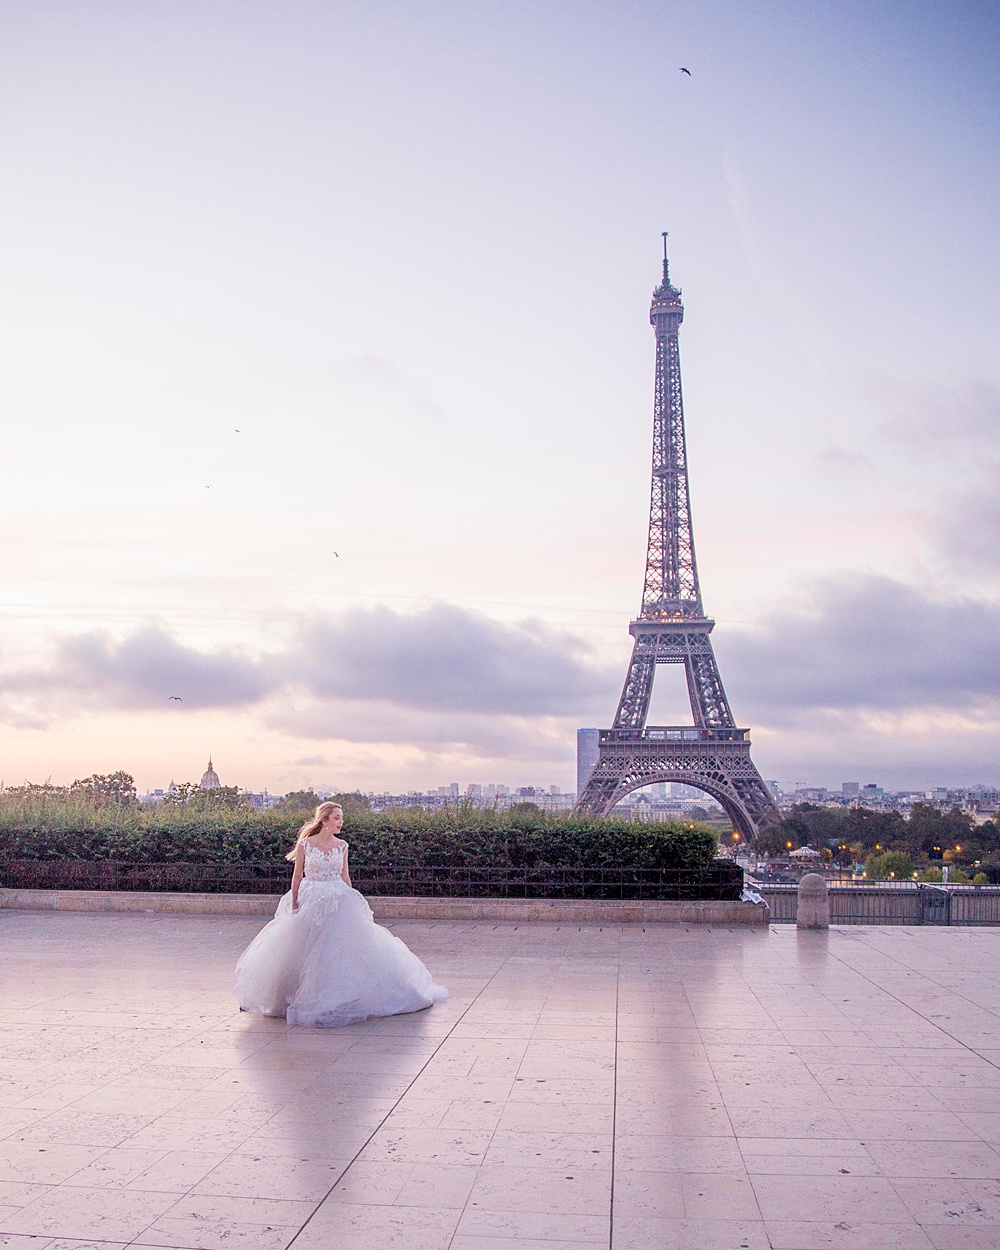 Eiffel Tower Romantic Wedding Photo